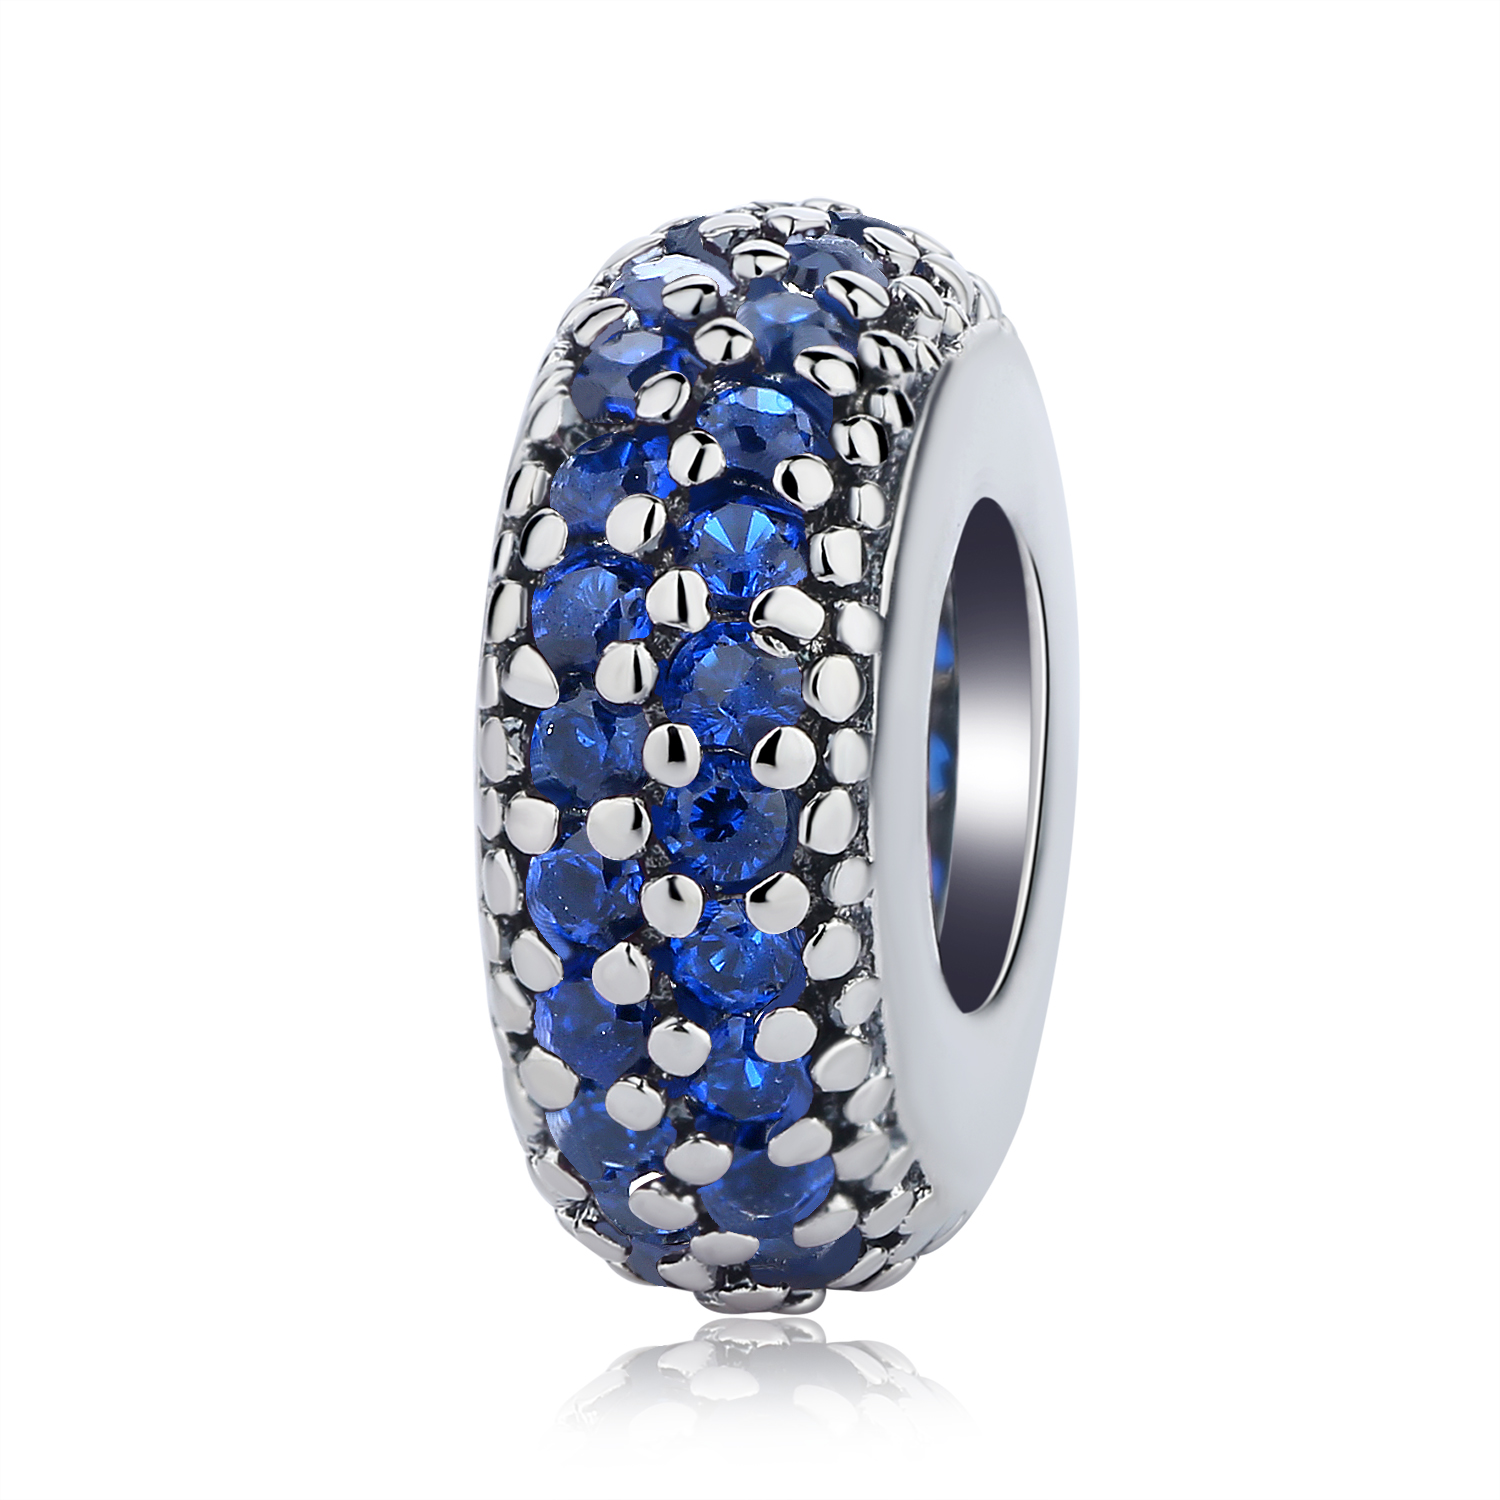 NBSAMENG Authentieke 925 Sterling Zilver Micro-pave Pure Color Spacer - Mode-sieraden - Foto 4